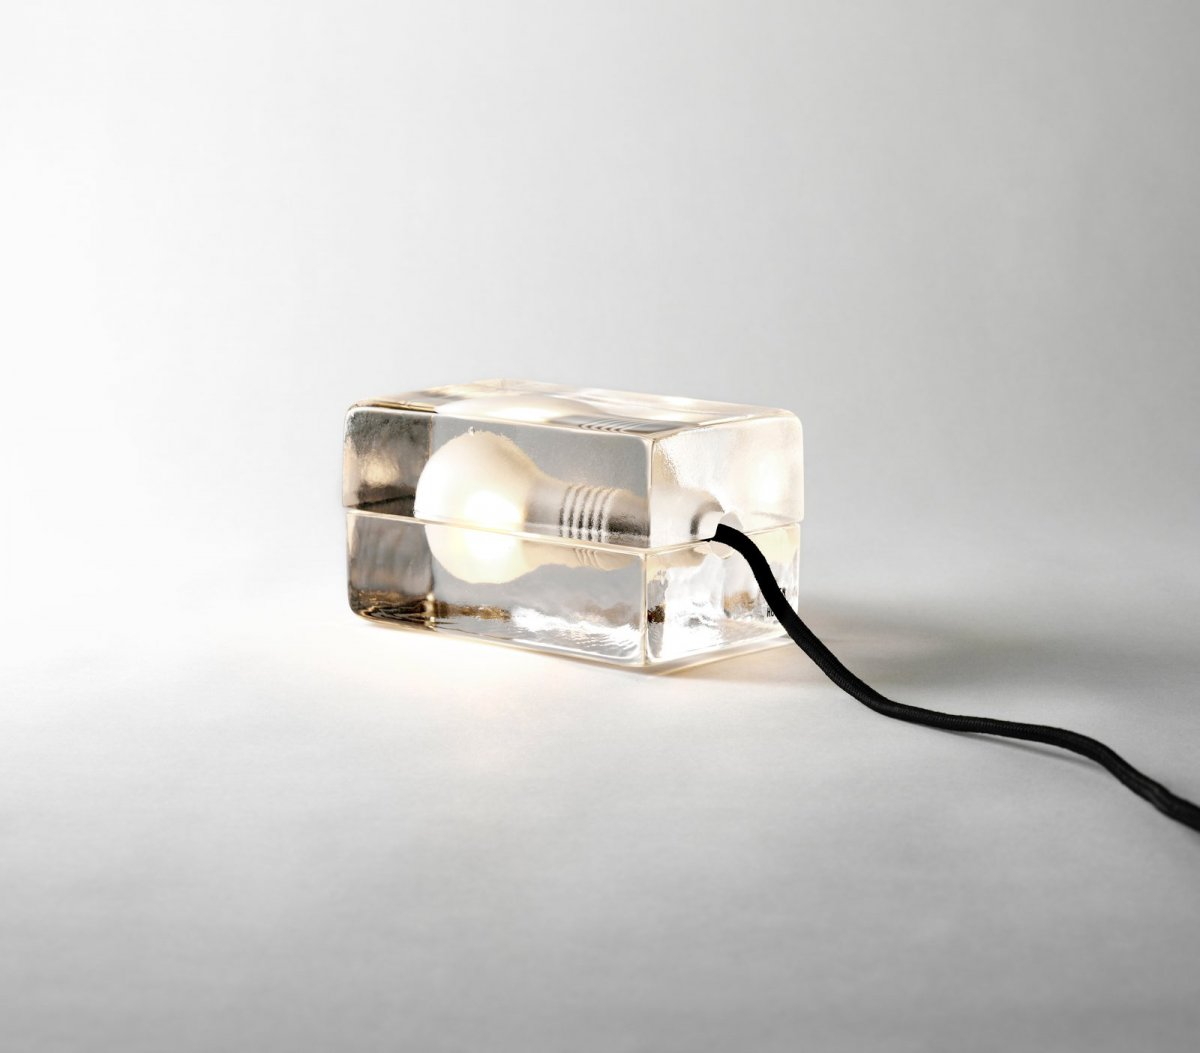 Block Lamp, black cord, lit.